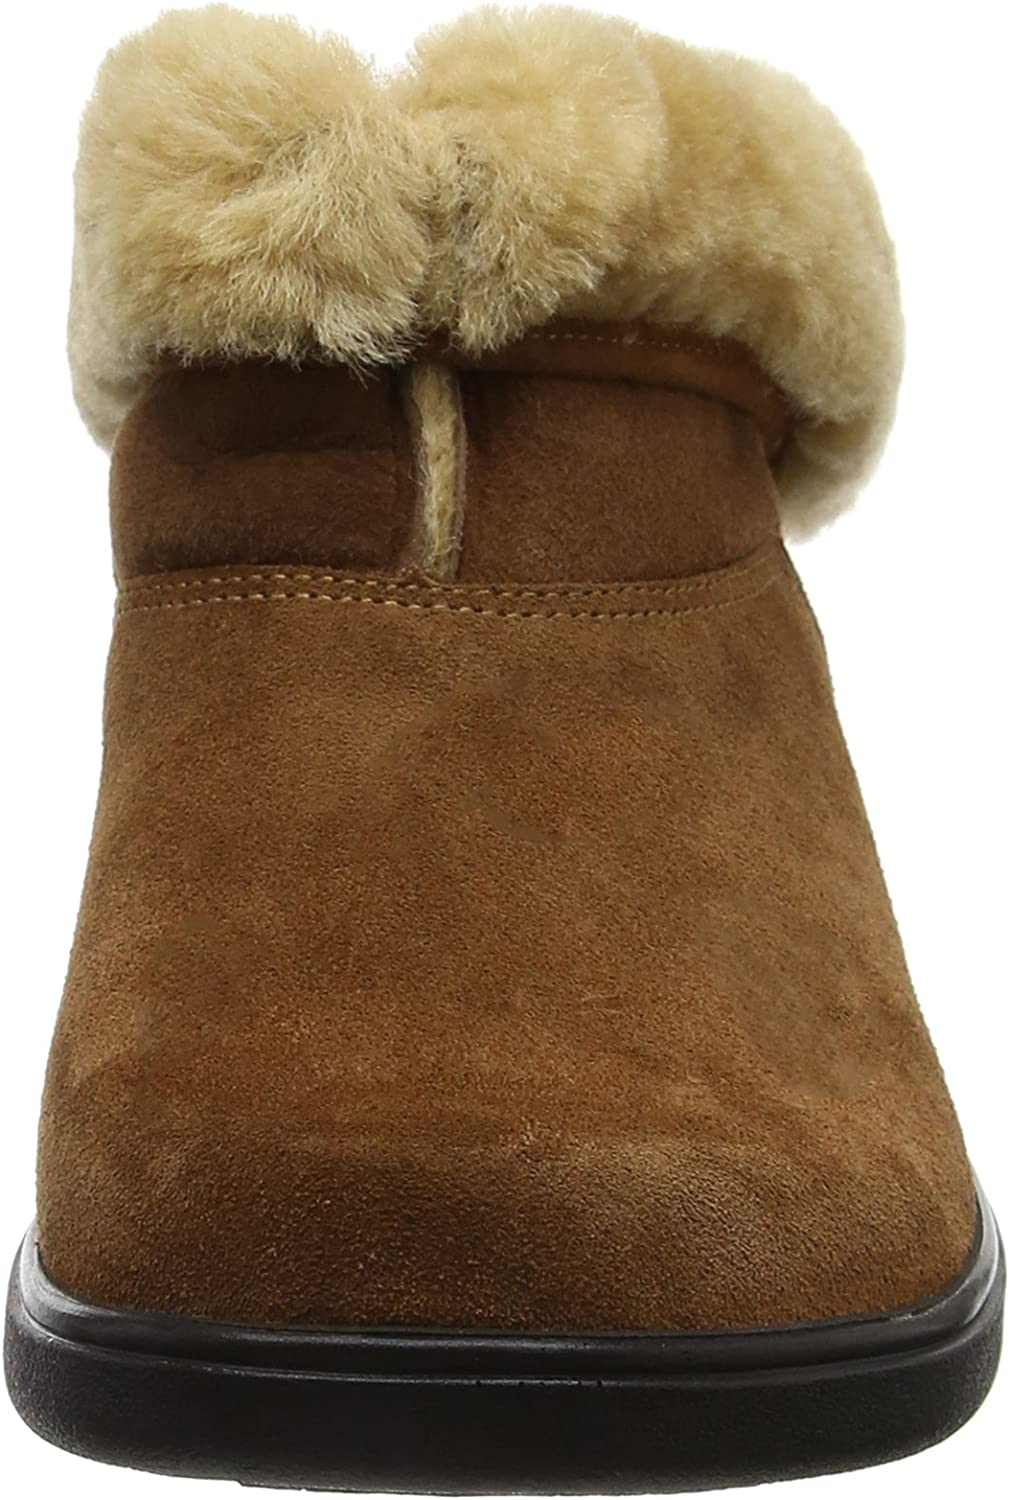 warm and comfy women boots NEW Romika Gomera 02 Women Slippers Booties